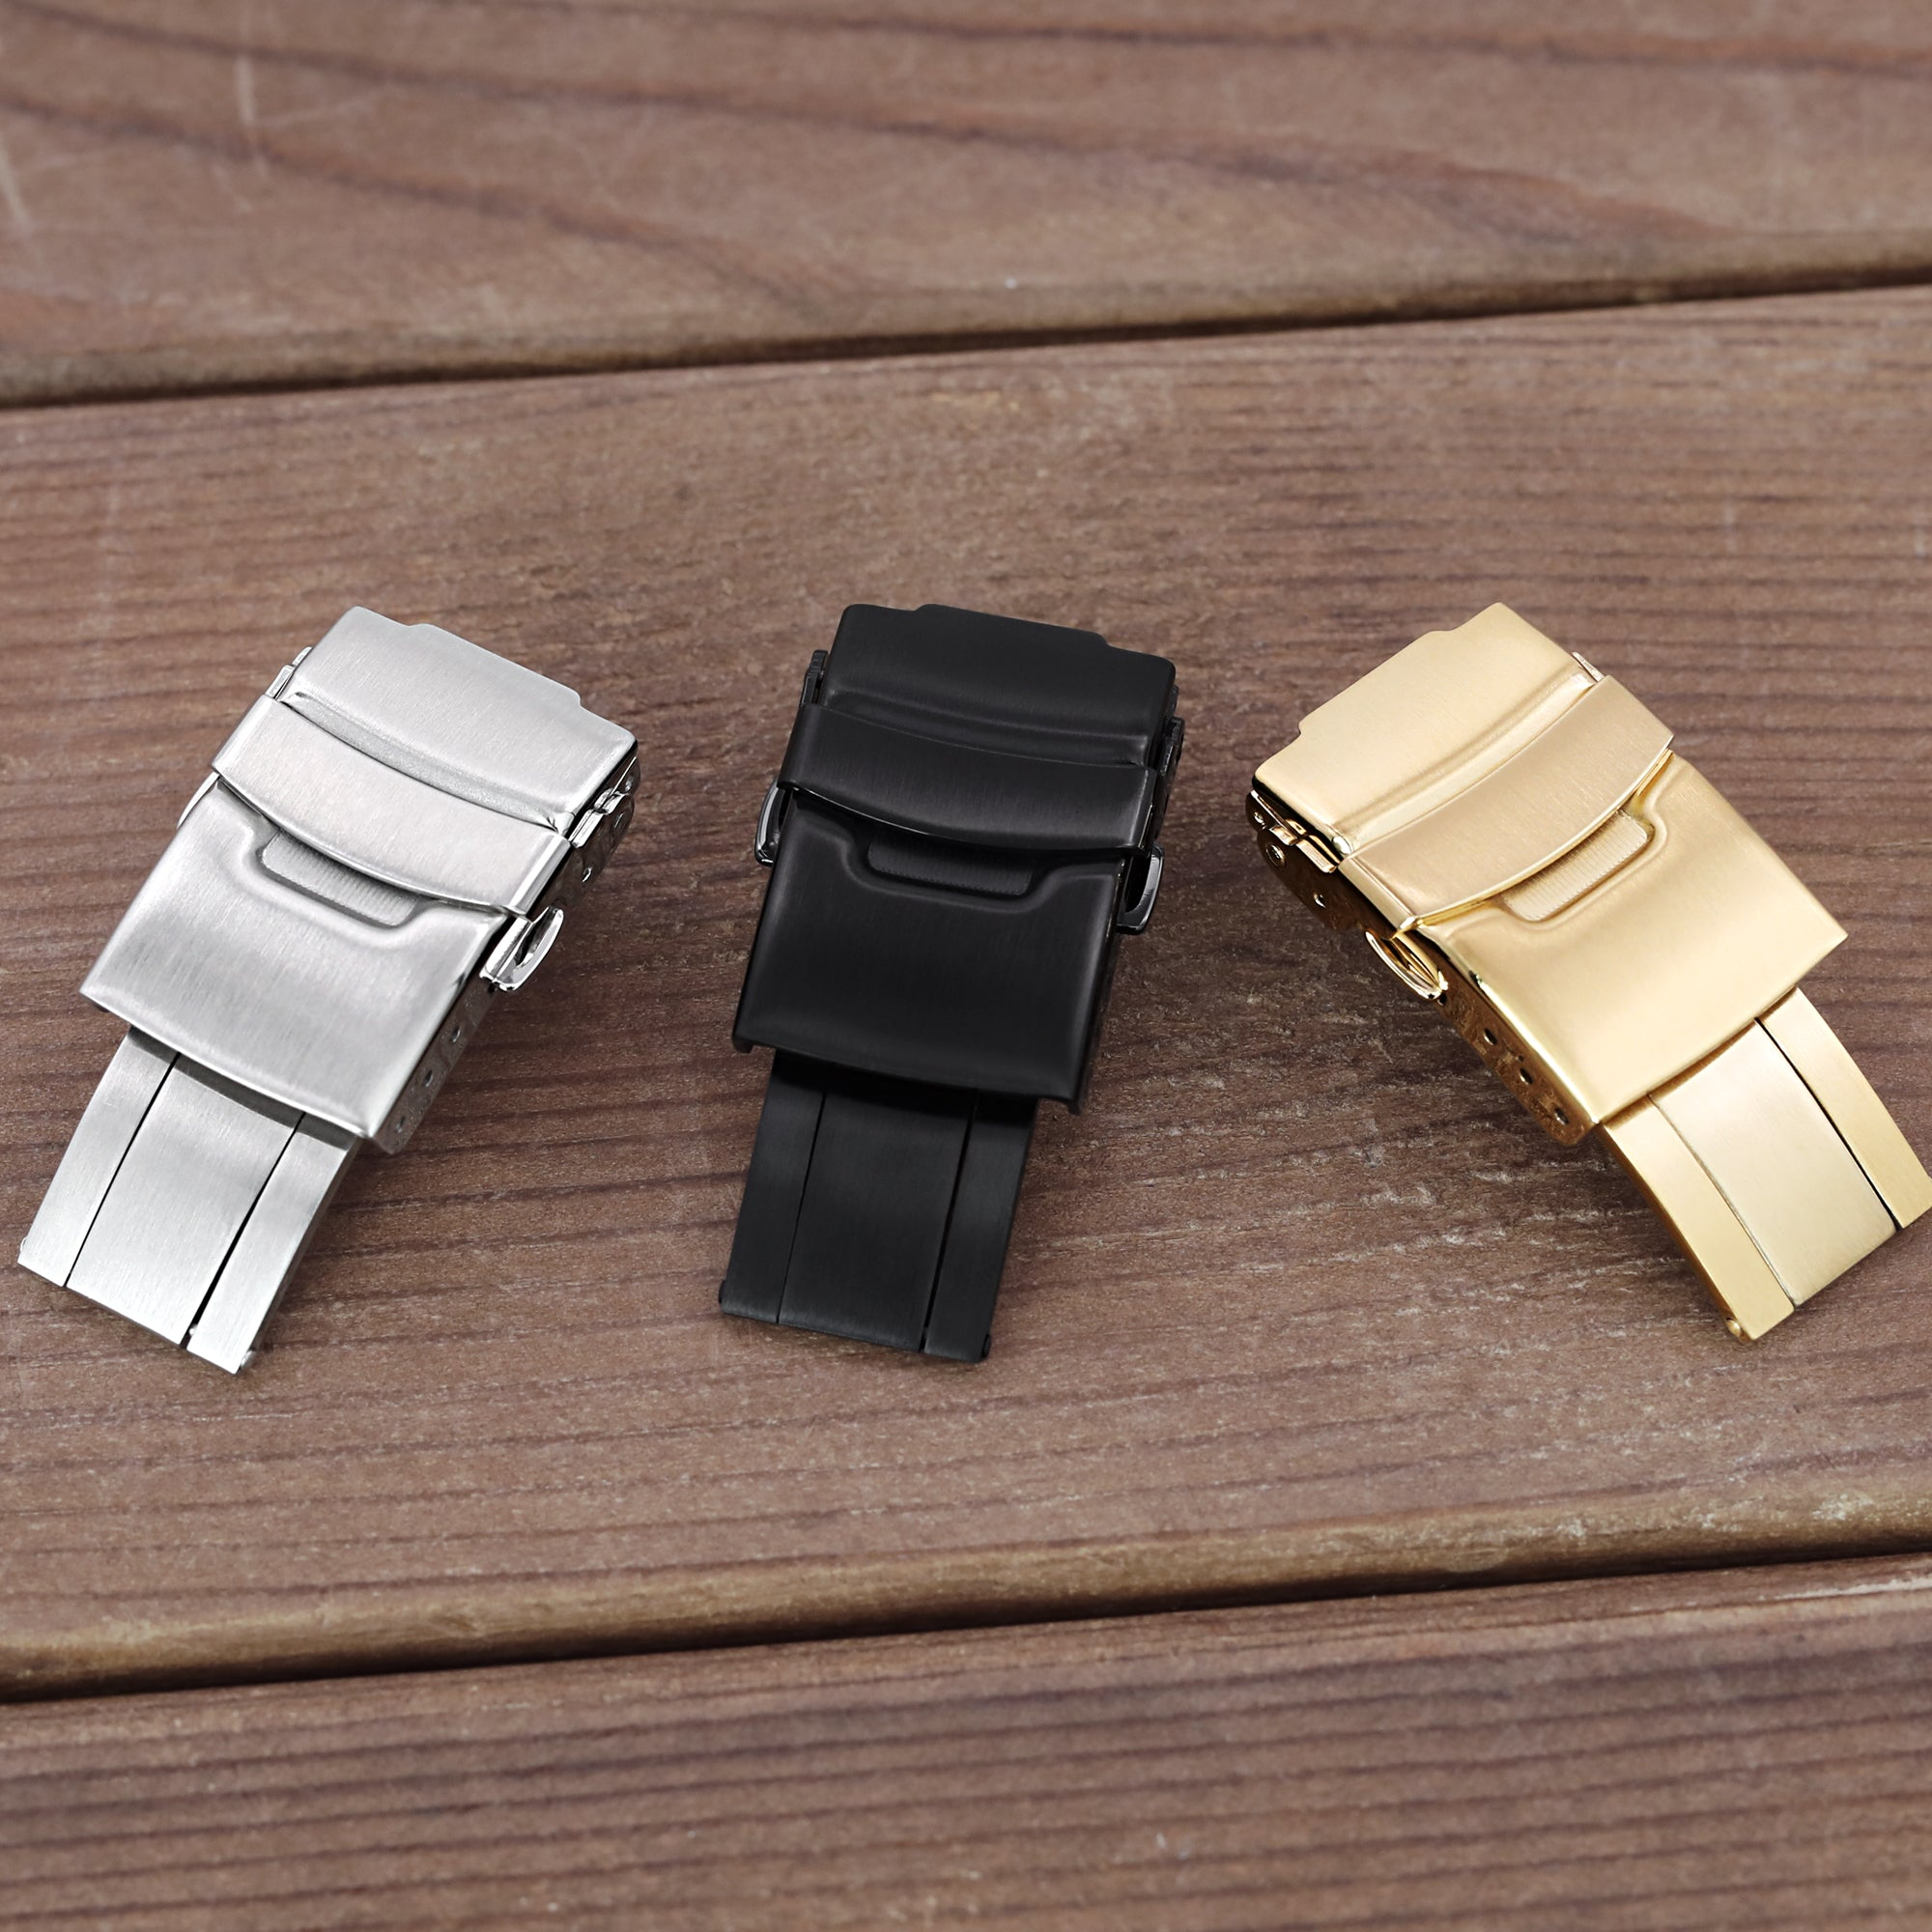 18mm Stainless Steel Diver Clasp Double Lock Button Diver Buckle Brushed IP Gold Strapcode Buckles